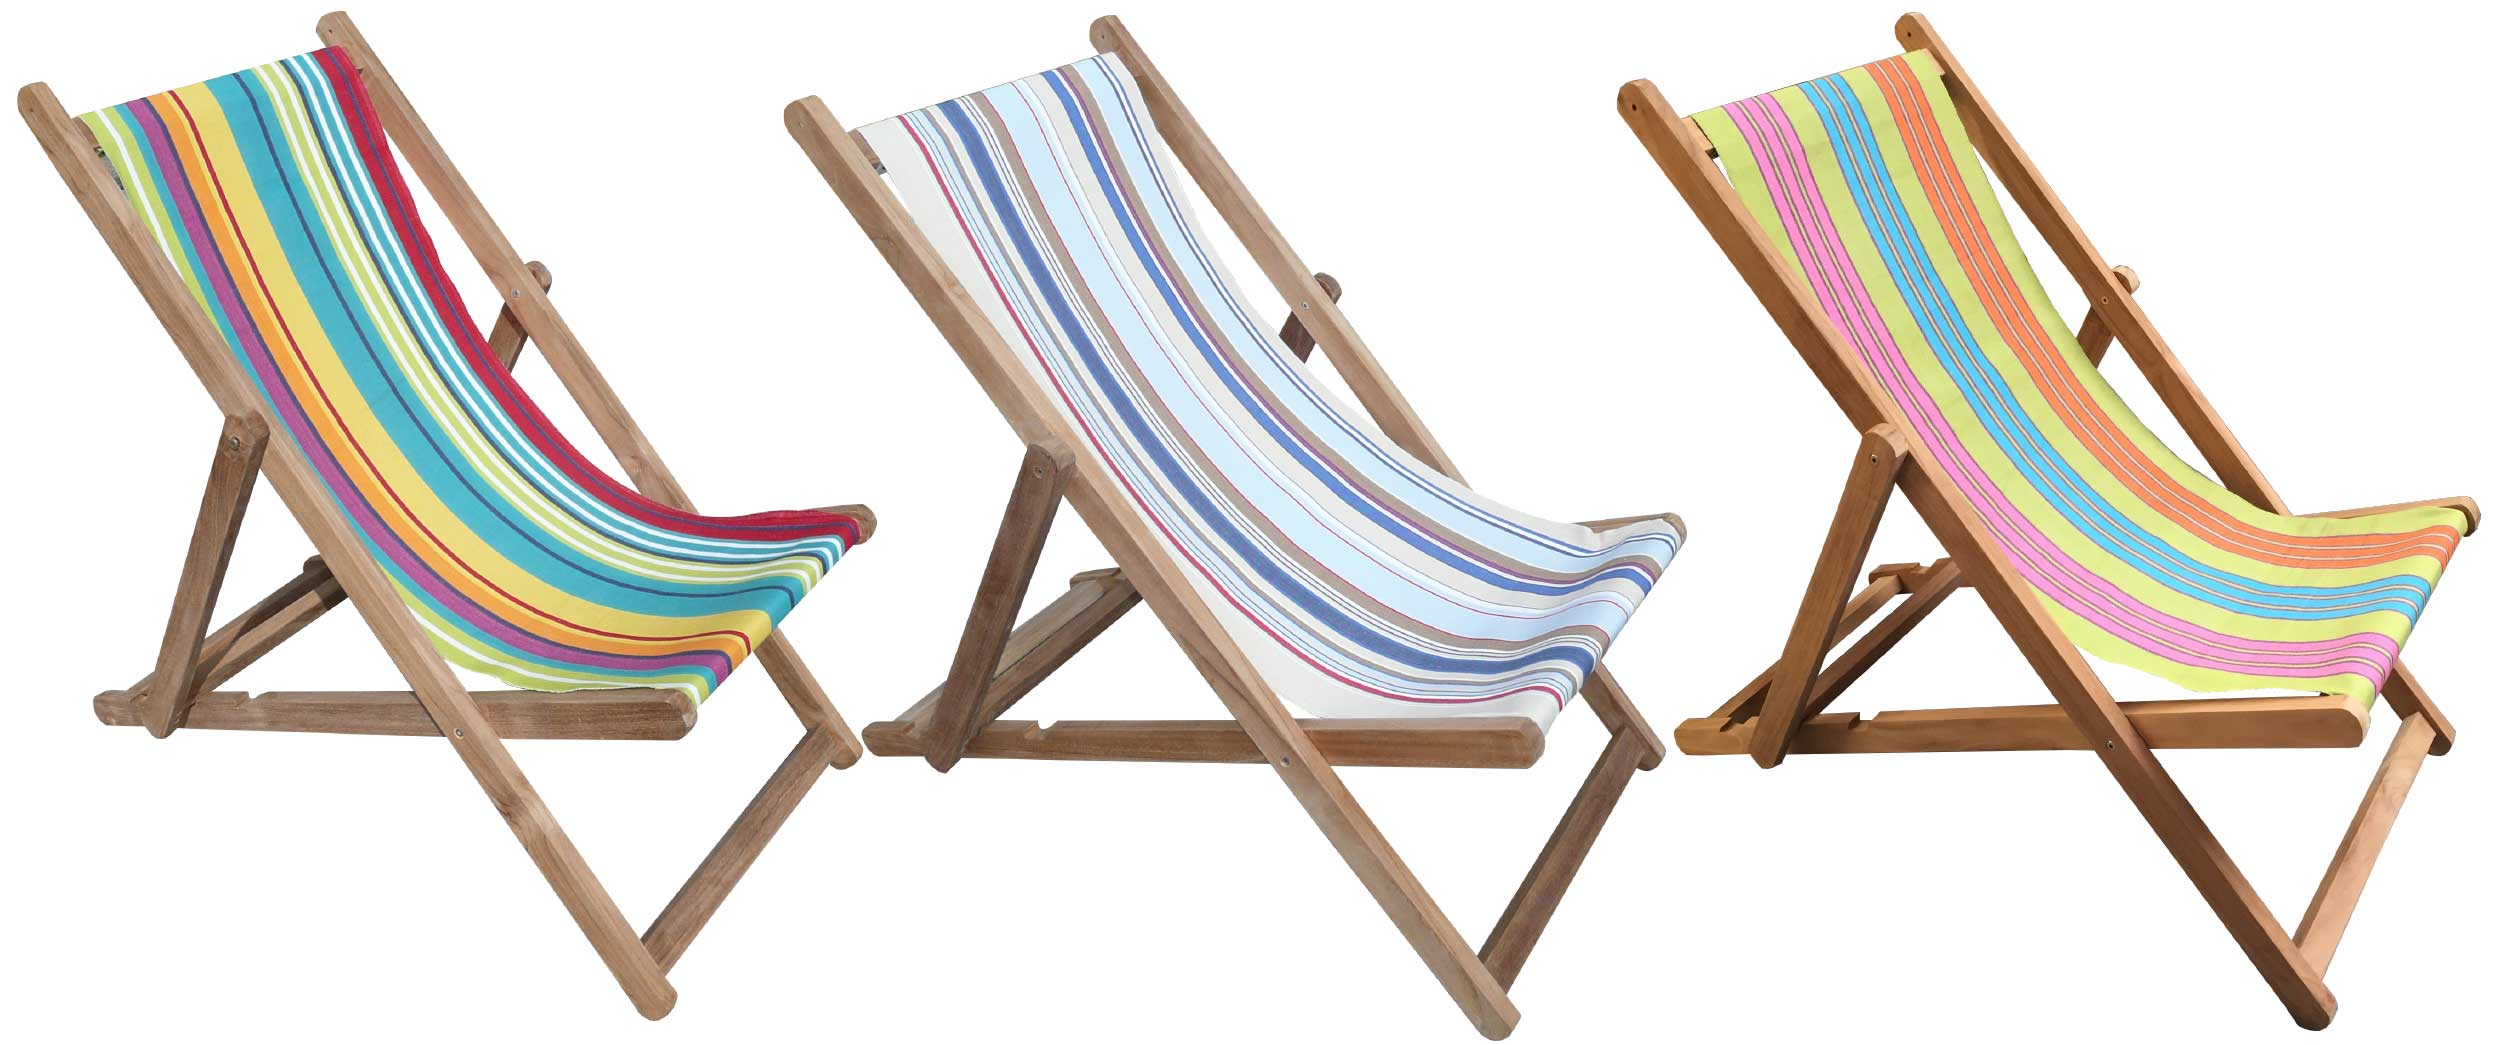 Deckchairs Buy Folding Wooden Deck Chairs The Stripes